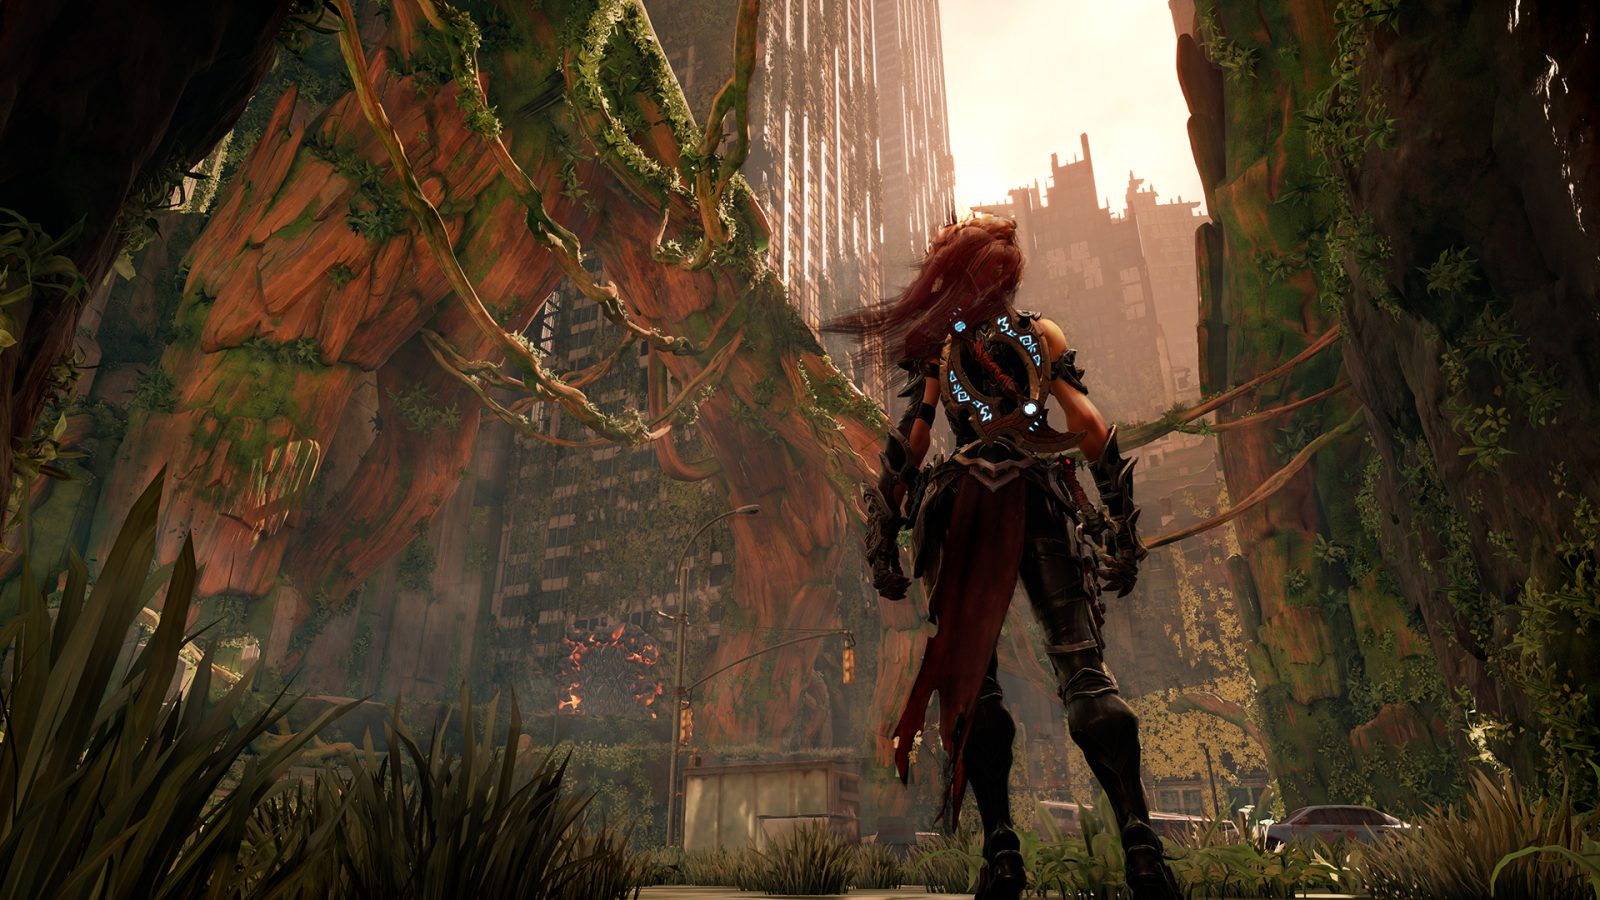 Darksiders 3, Subnautica, and more are now on Game Pass for PC